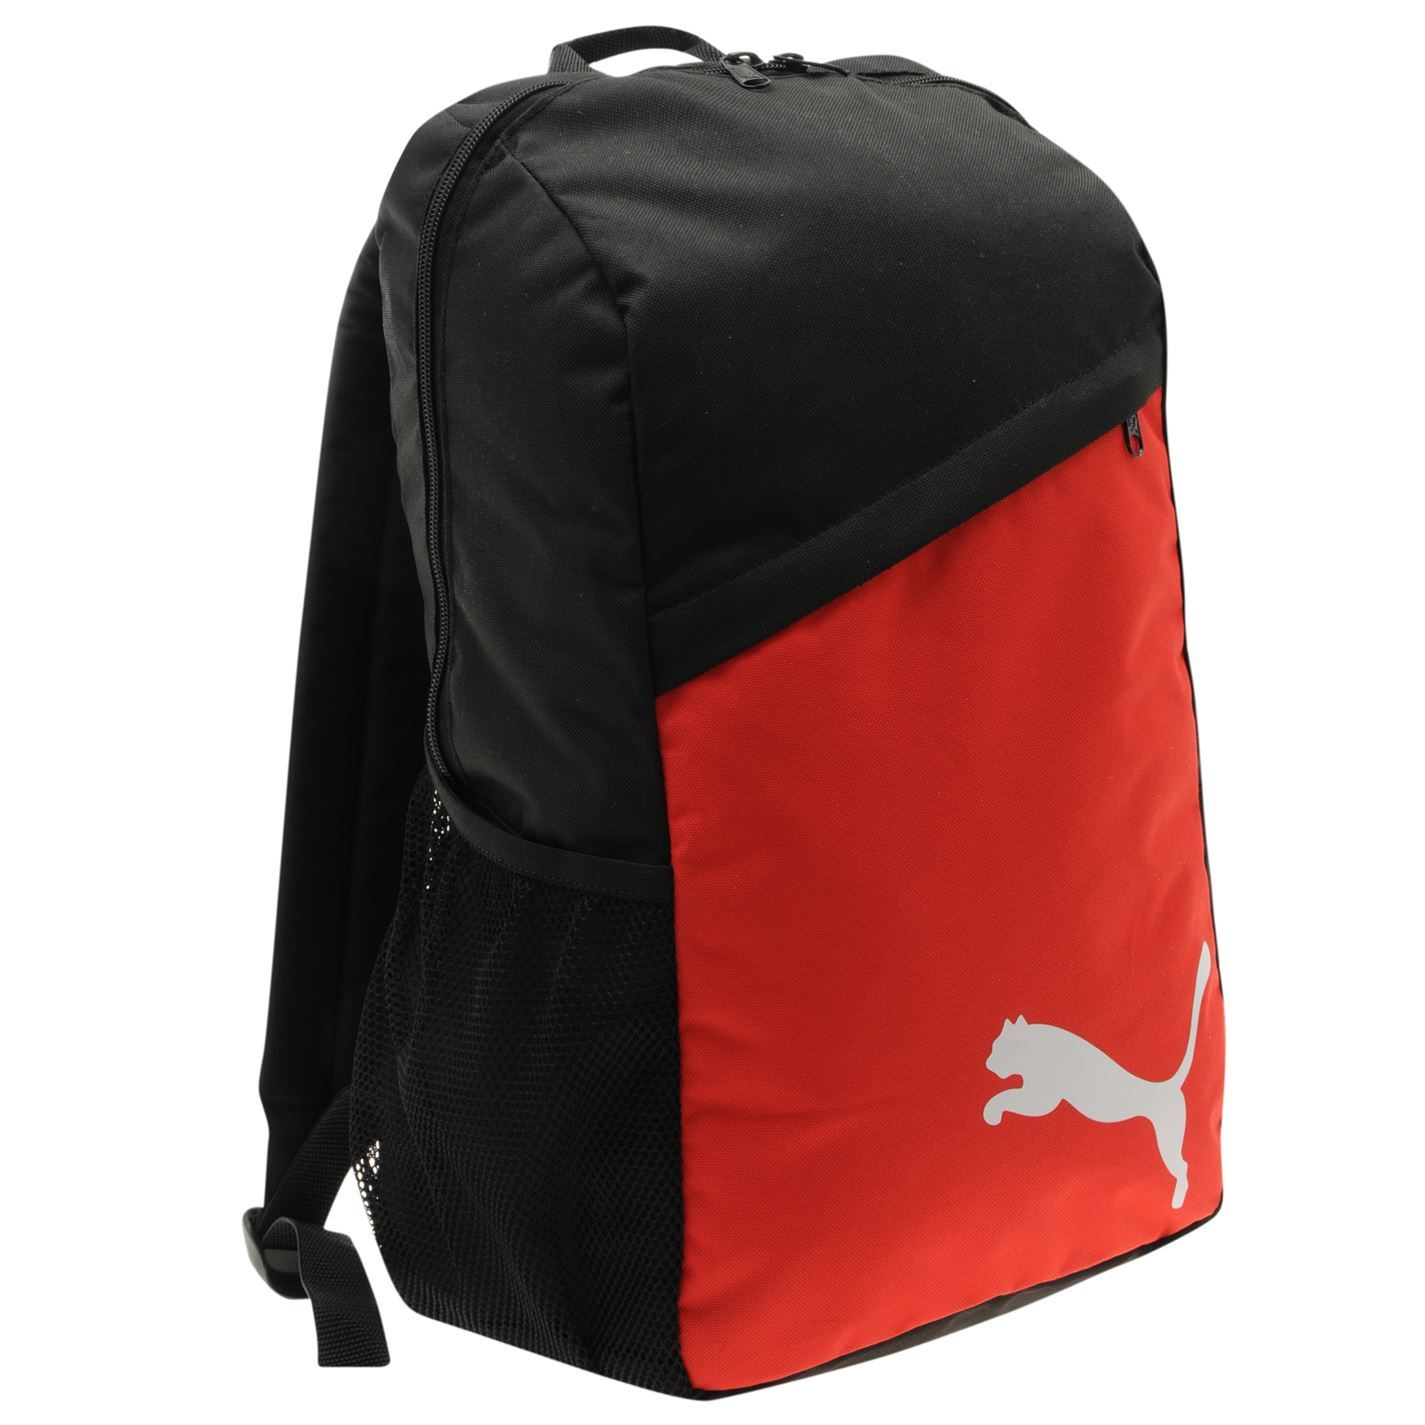 0d8ebde3660 ... Puma Pro Training Backpack Black Red Rucksack Sports Kitbag Travel Bag  ...